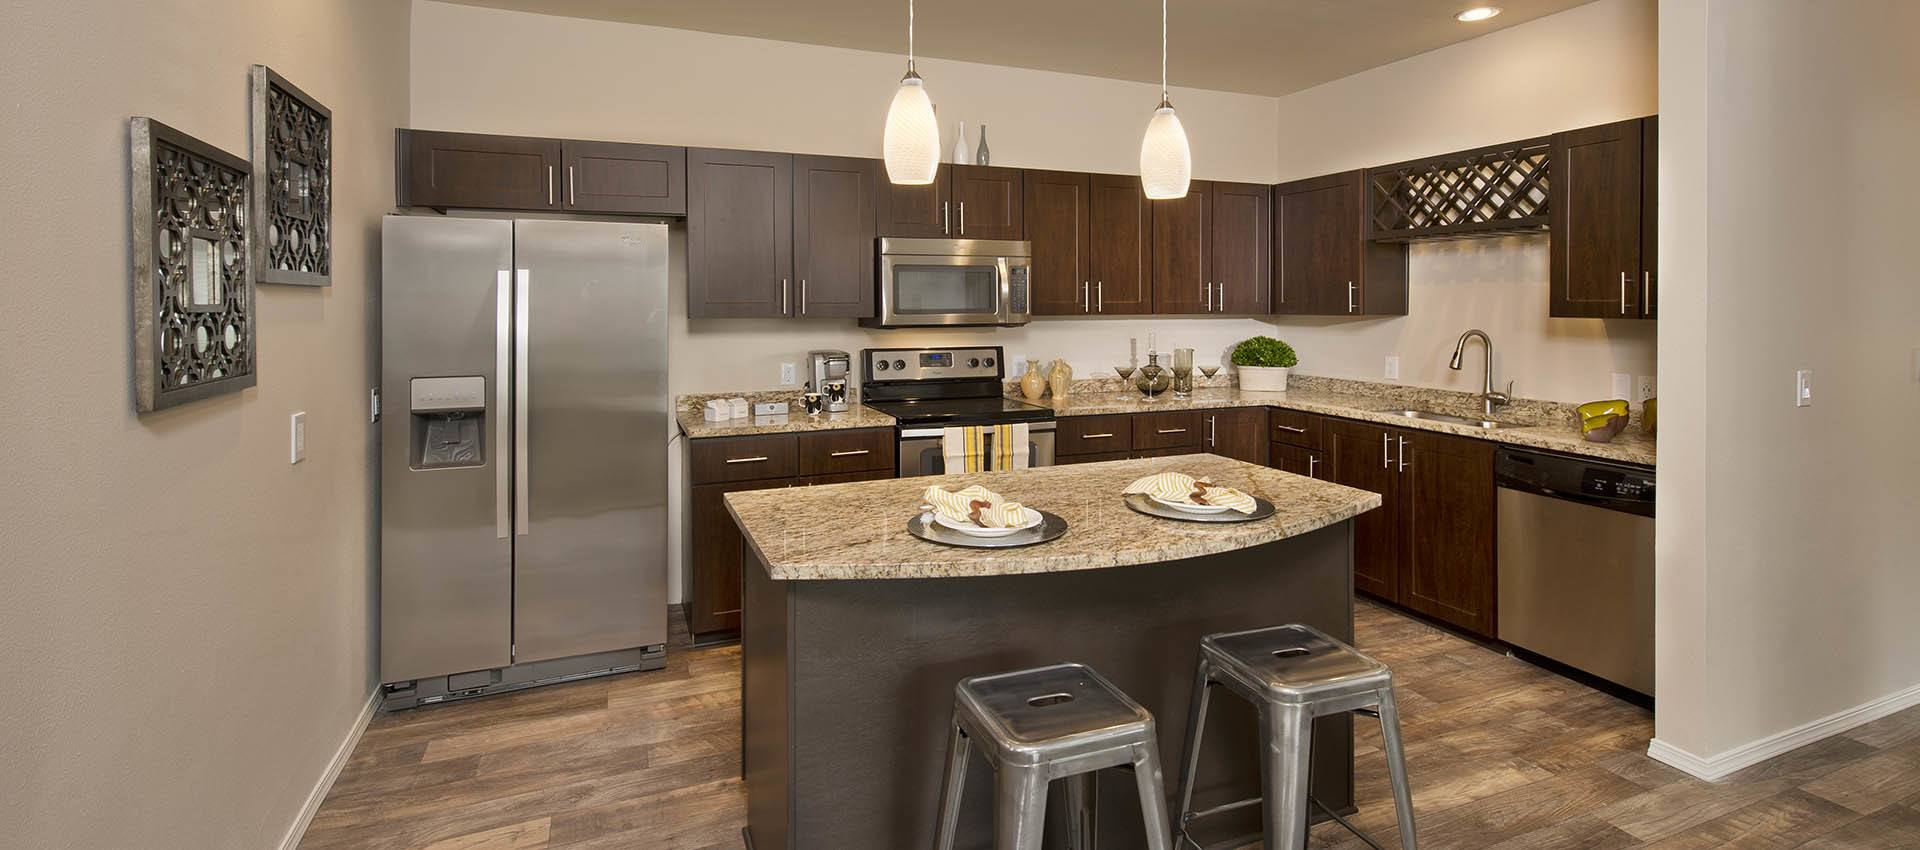 Luxury Kitchen With Stainless Appliances at Altamont Summit in Happy Valley, OR